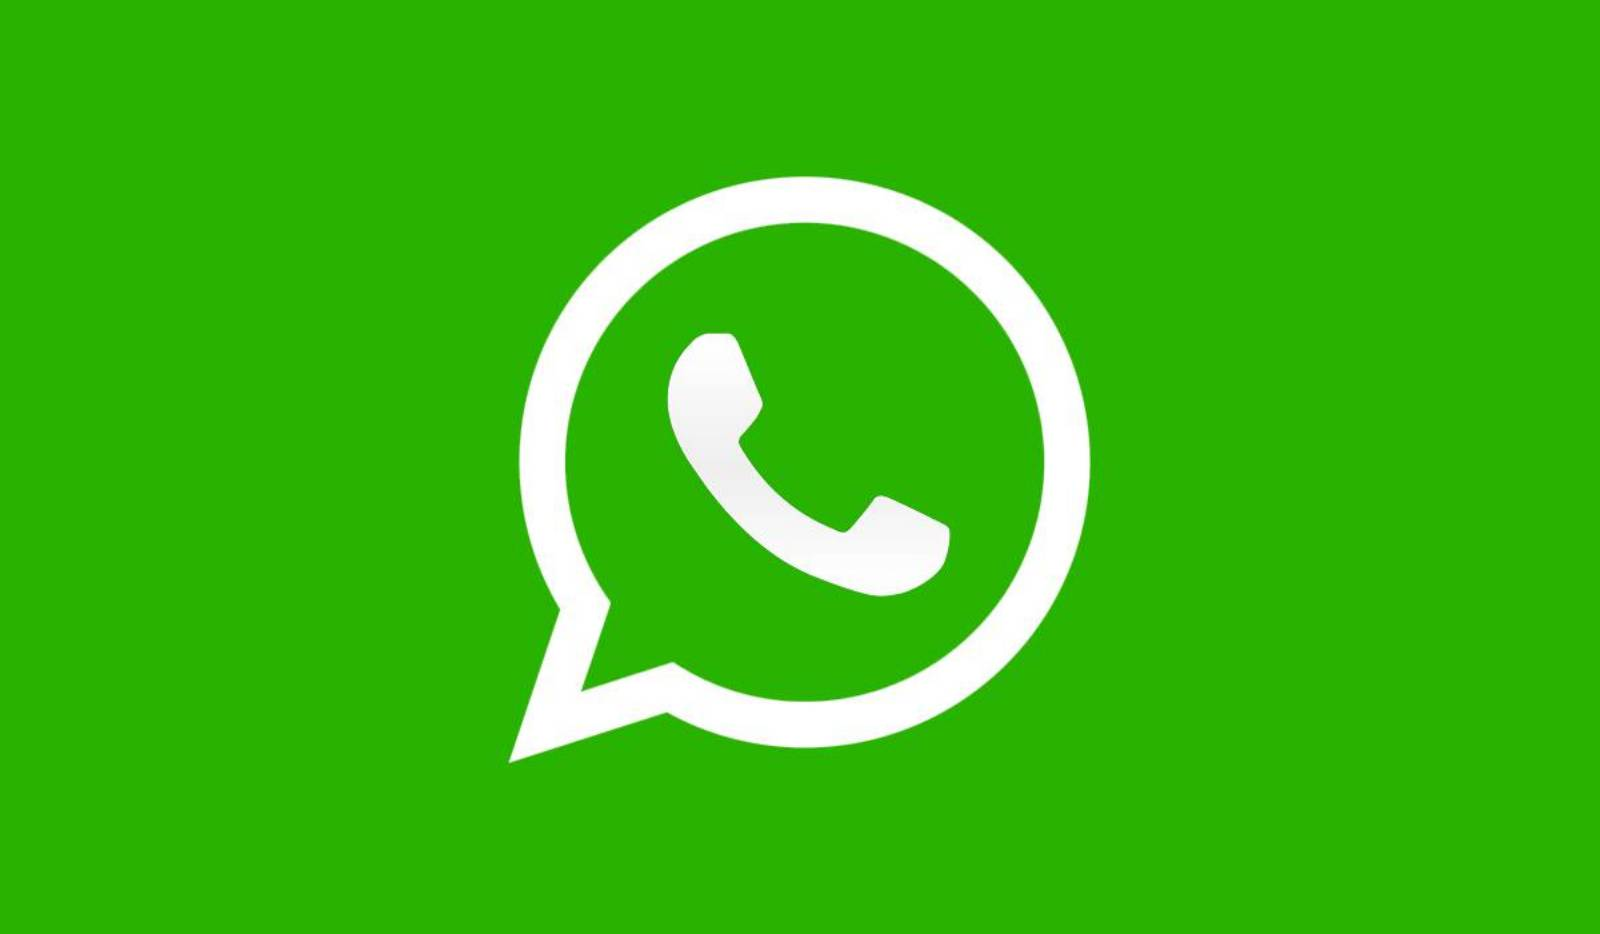 WhatsApp simplificare